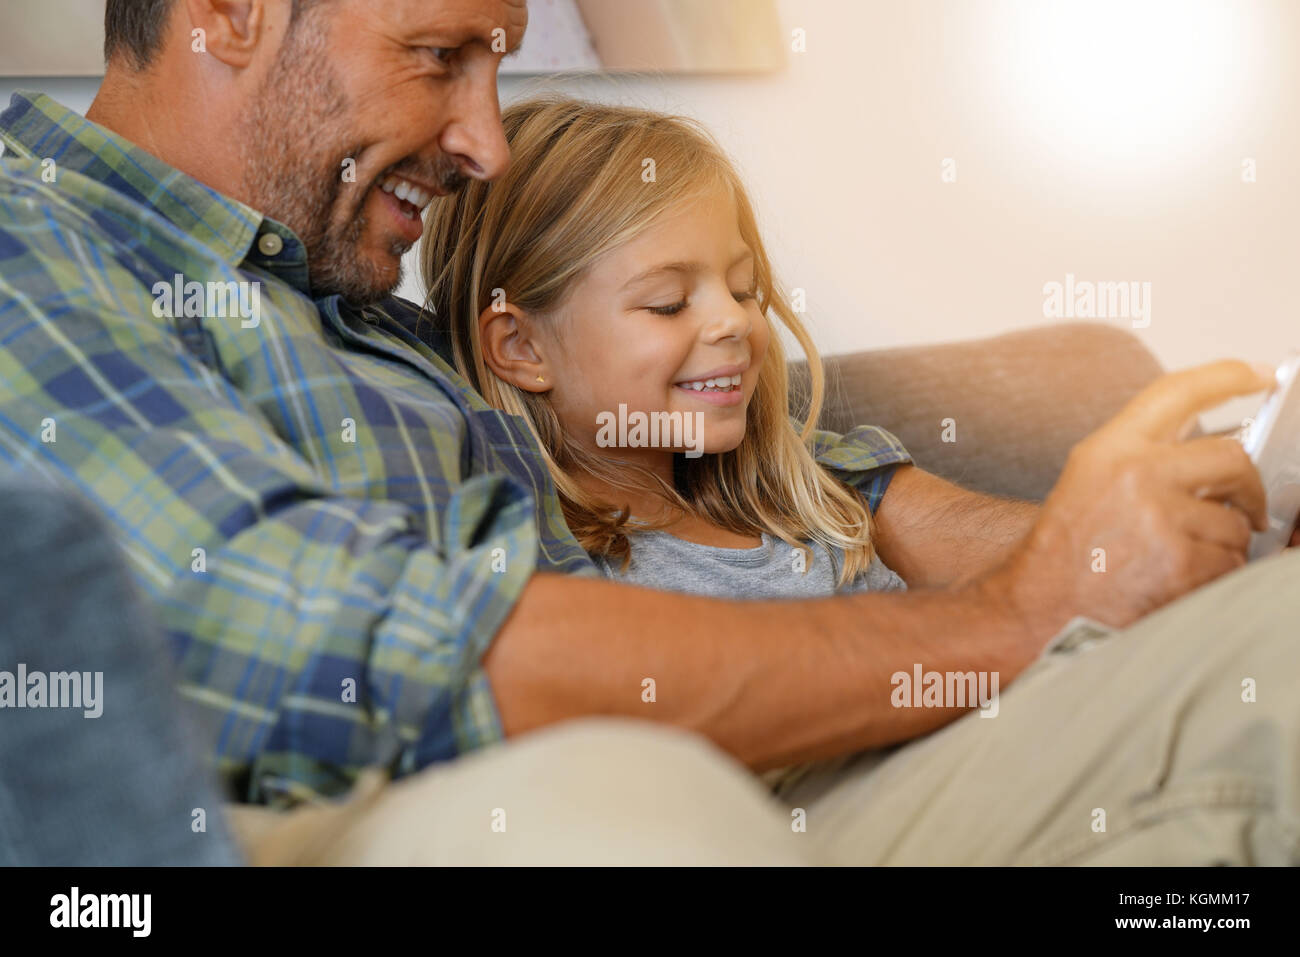 Daddy with little girl connected on digital tablet - Stock Image